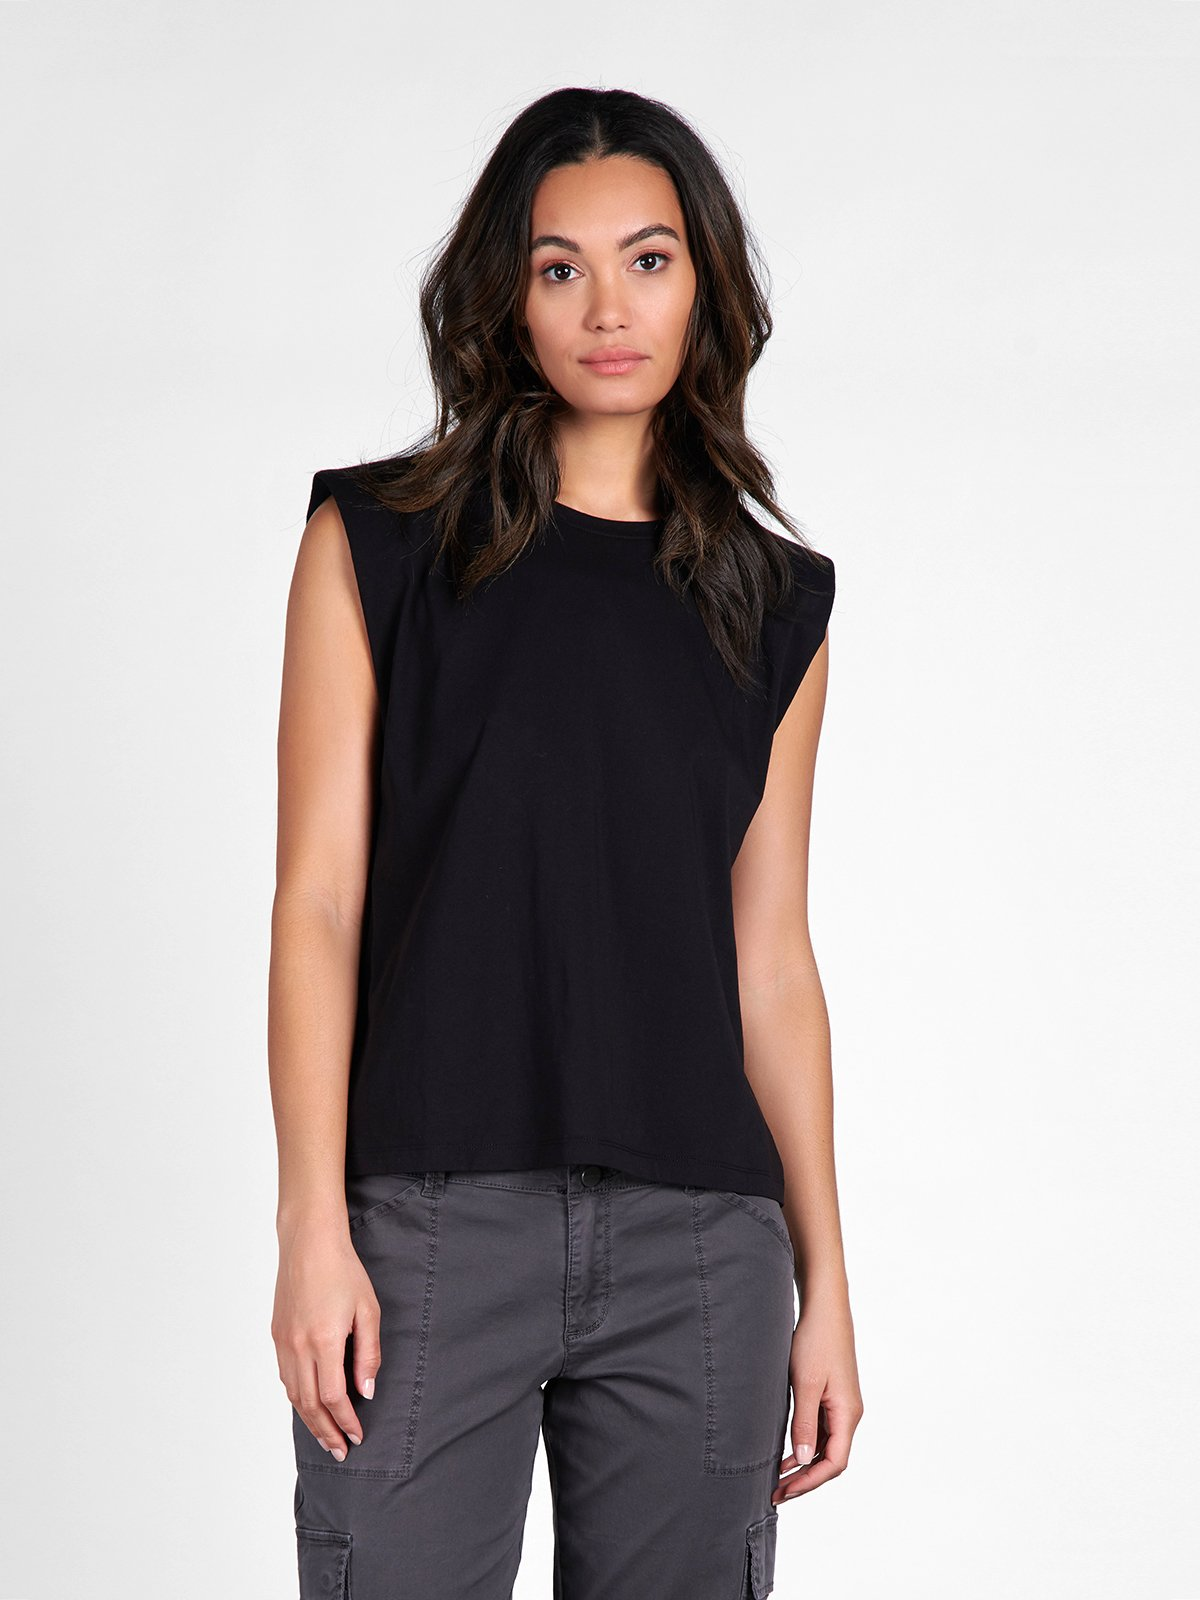 Shoulder Pad Tee